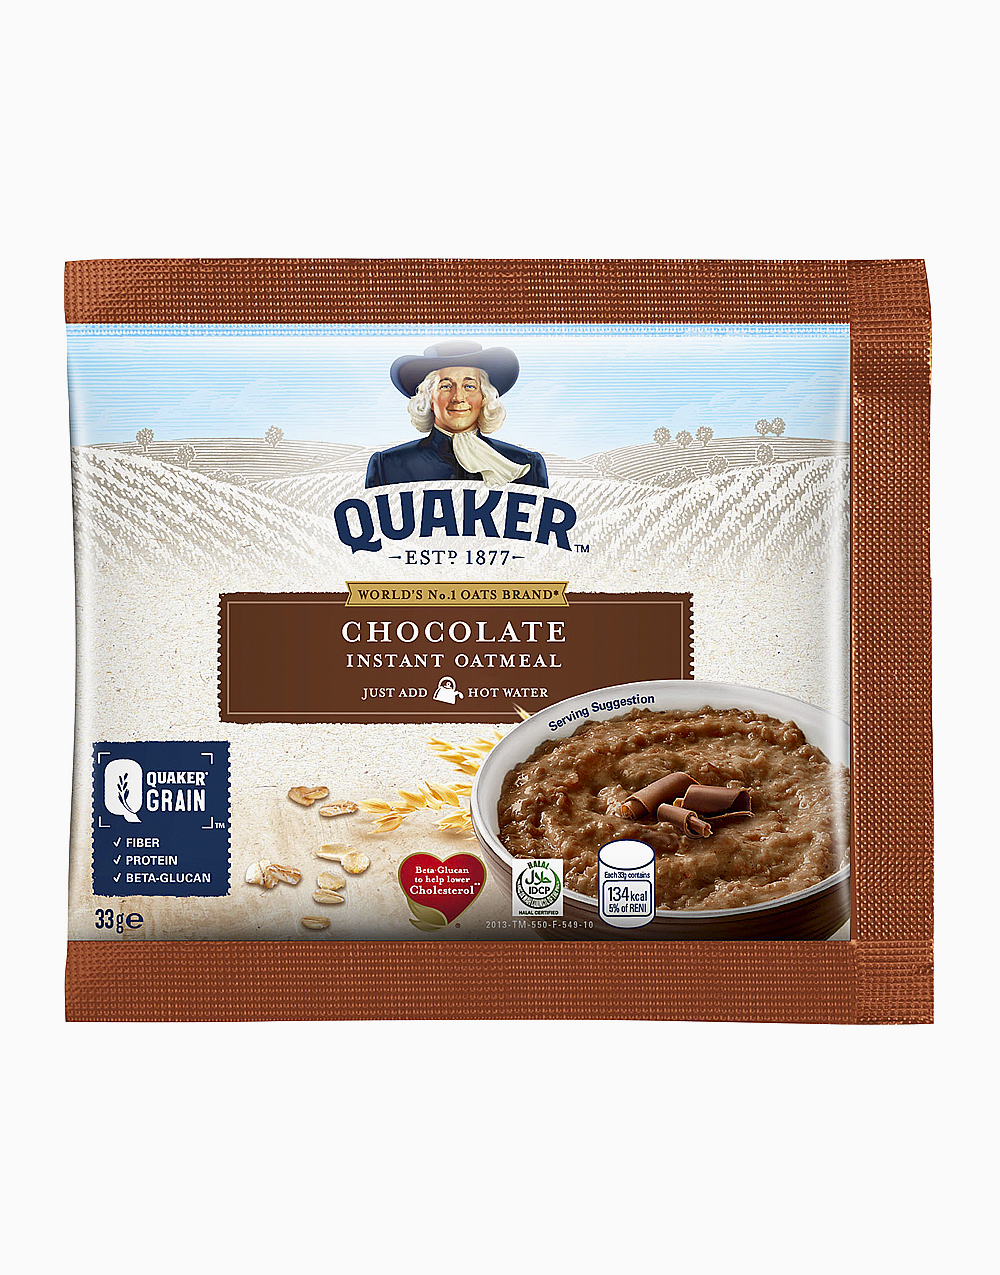 Flavored Oatmeal Chocolate (33g, Pack of 12) by Quaker